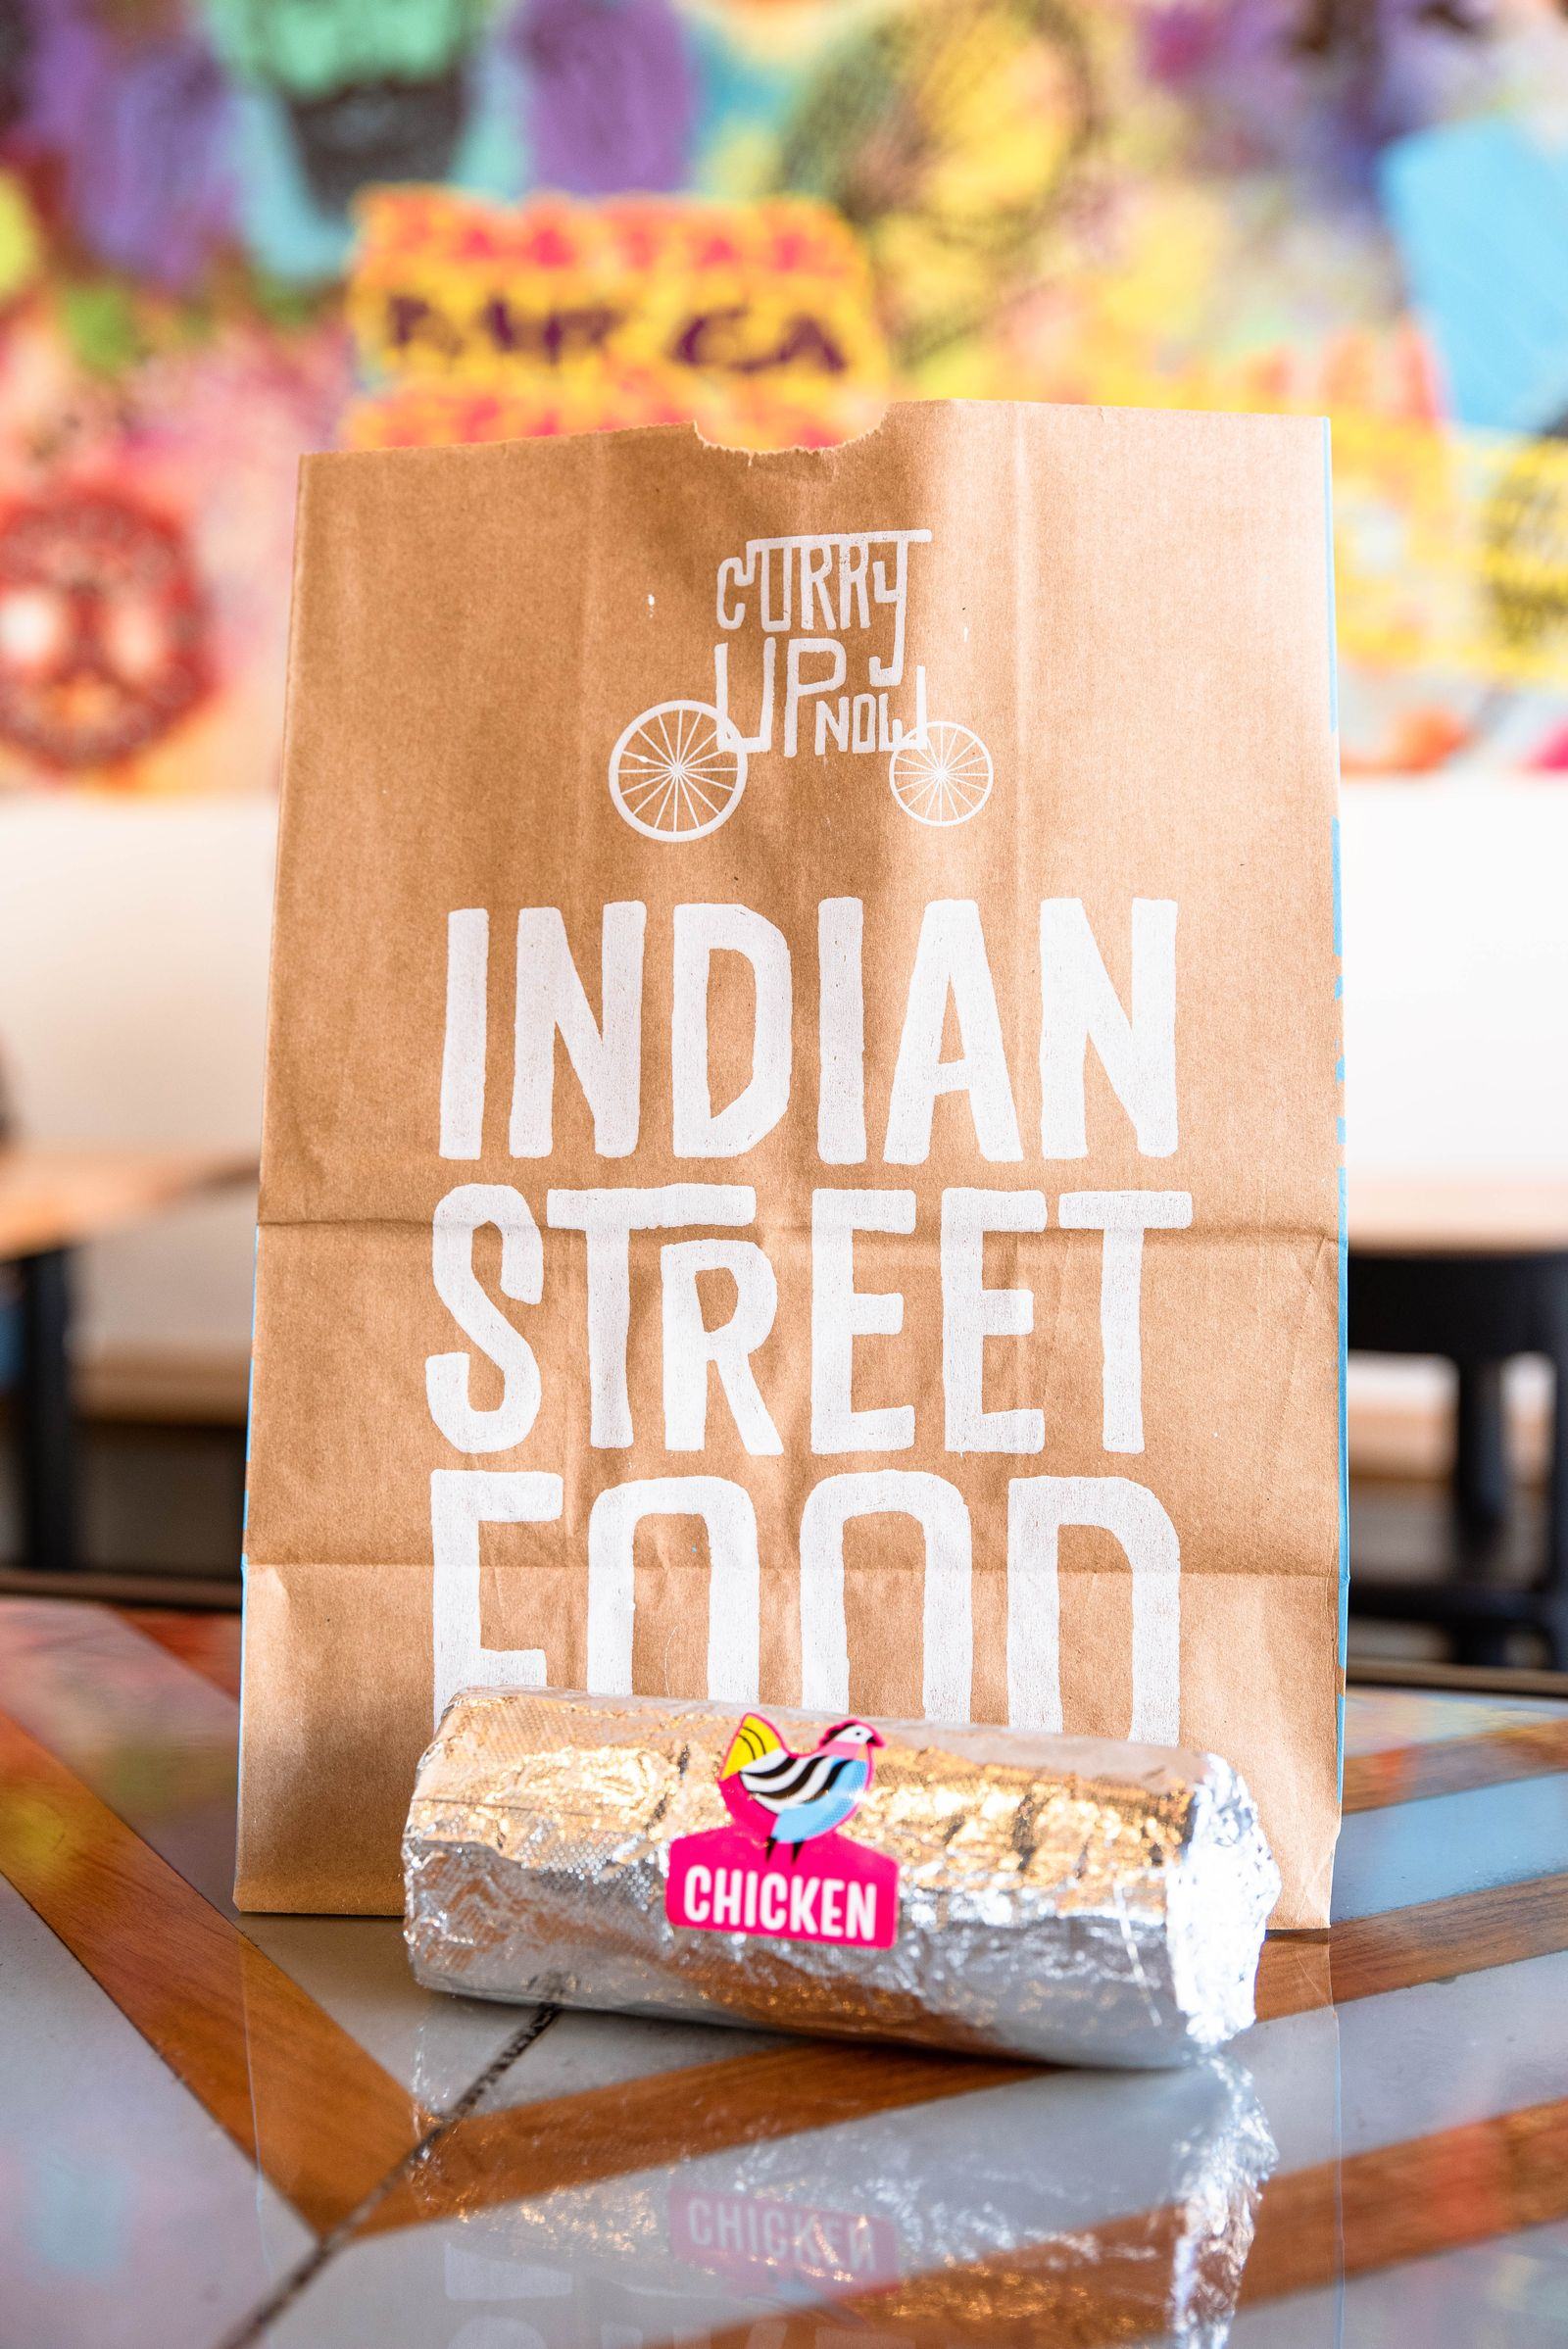 Curry Up Now Franchisee Opens Third Location in Metro Atlanta Area